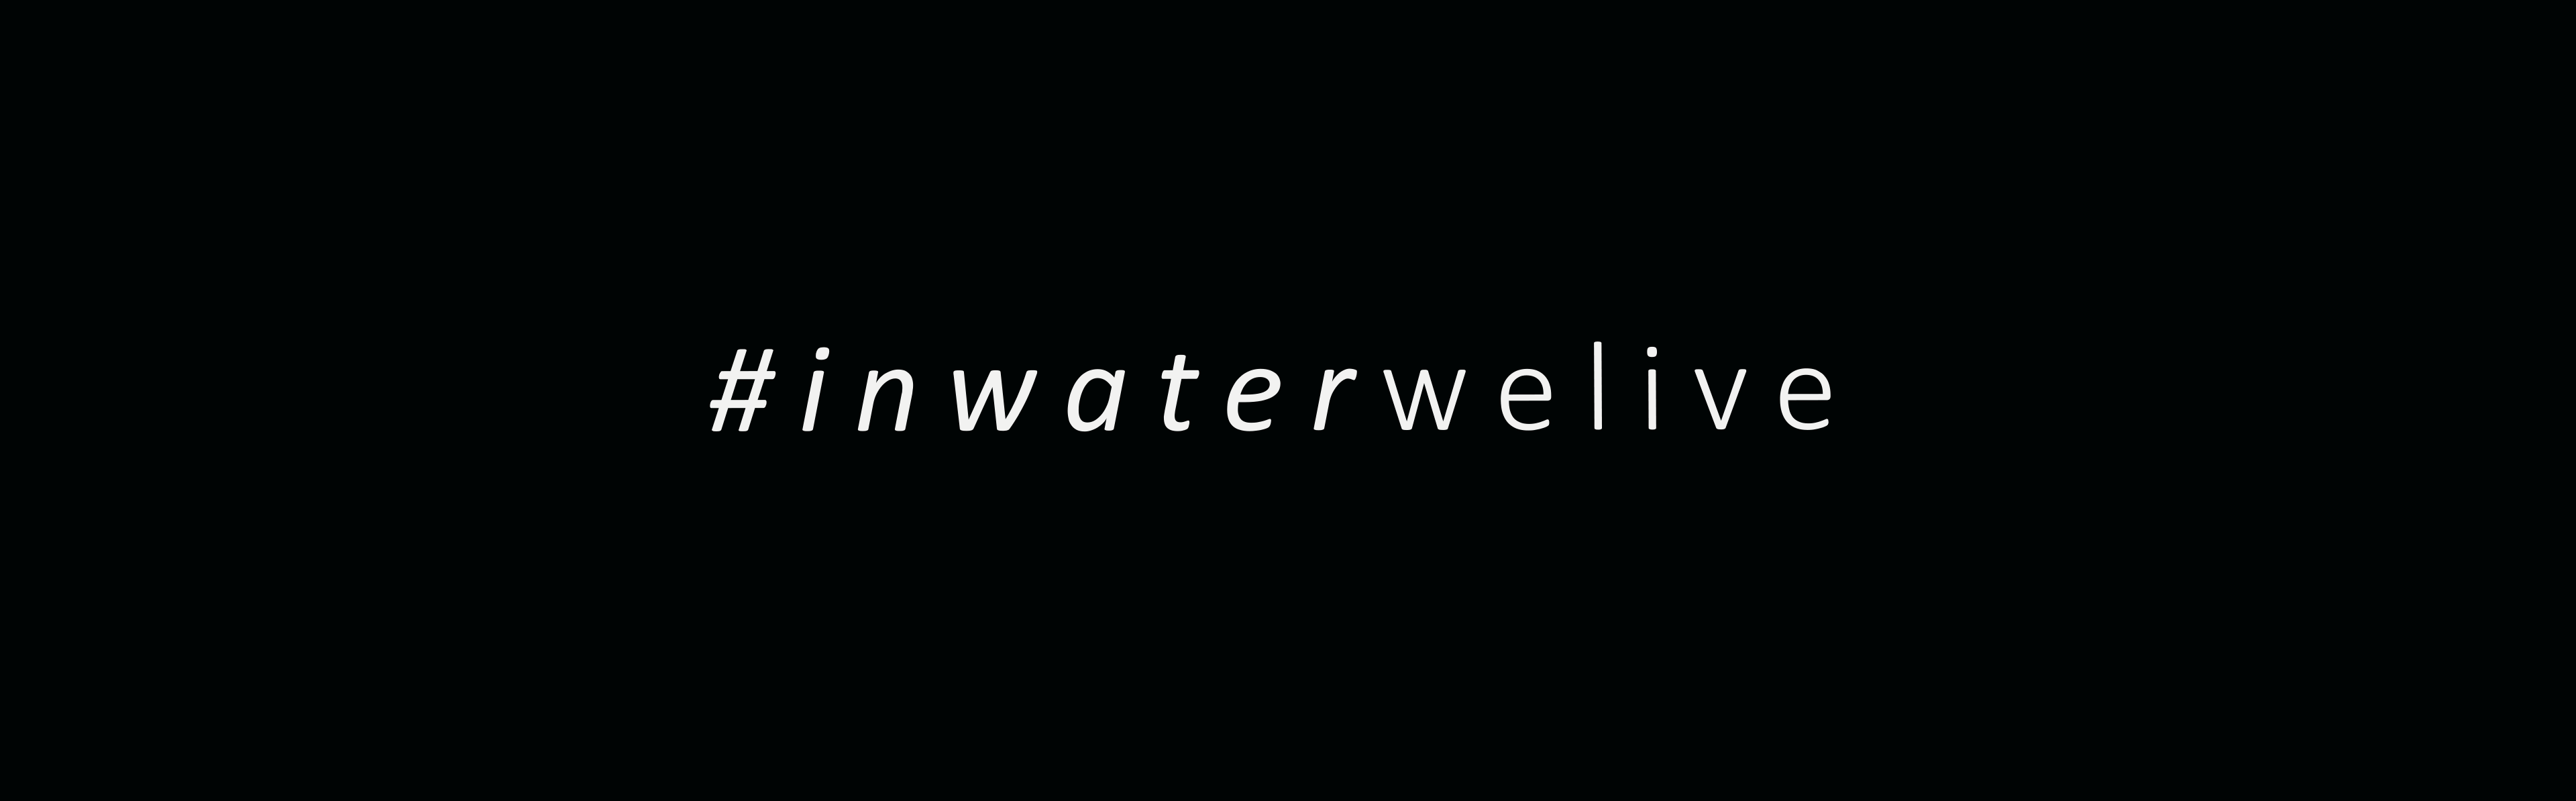 in water we live